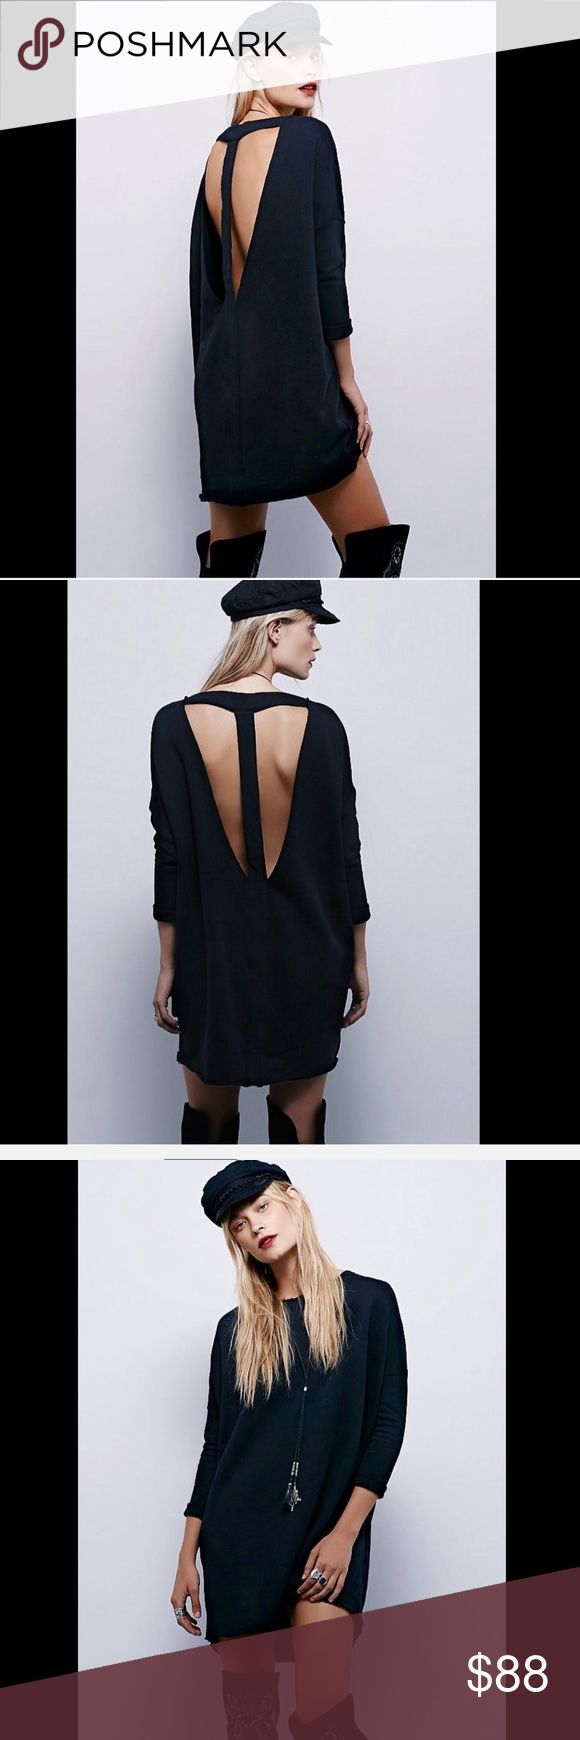 Selling this Free People  black Open Back Sweatshirt  Dress L on Poshmark! My username is: richbororiches. #shopmycloset #poshmark #fashion #shopping #style #forsale #Free People #Dresses & Skirts